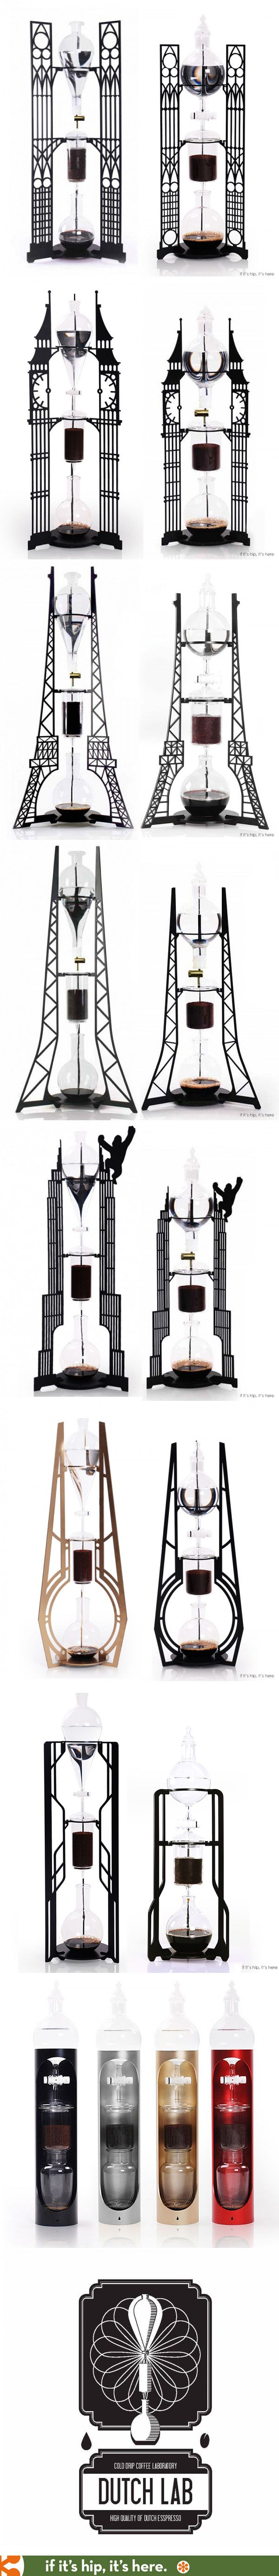 1000+ ideas about Cold Drip on Pinterest Cold drip coffee maker, Art deco and Art deco lighting